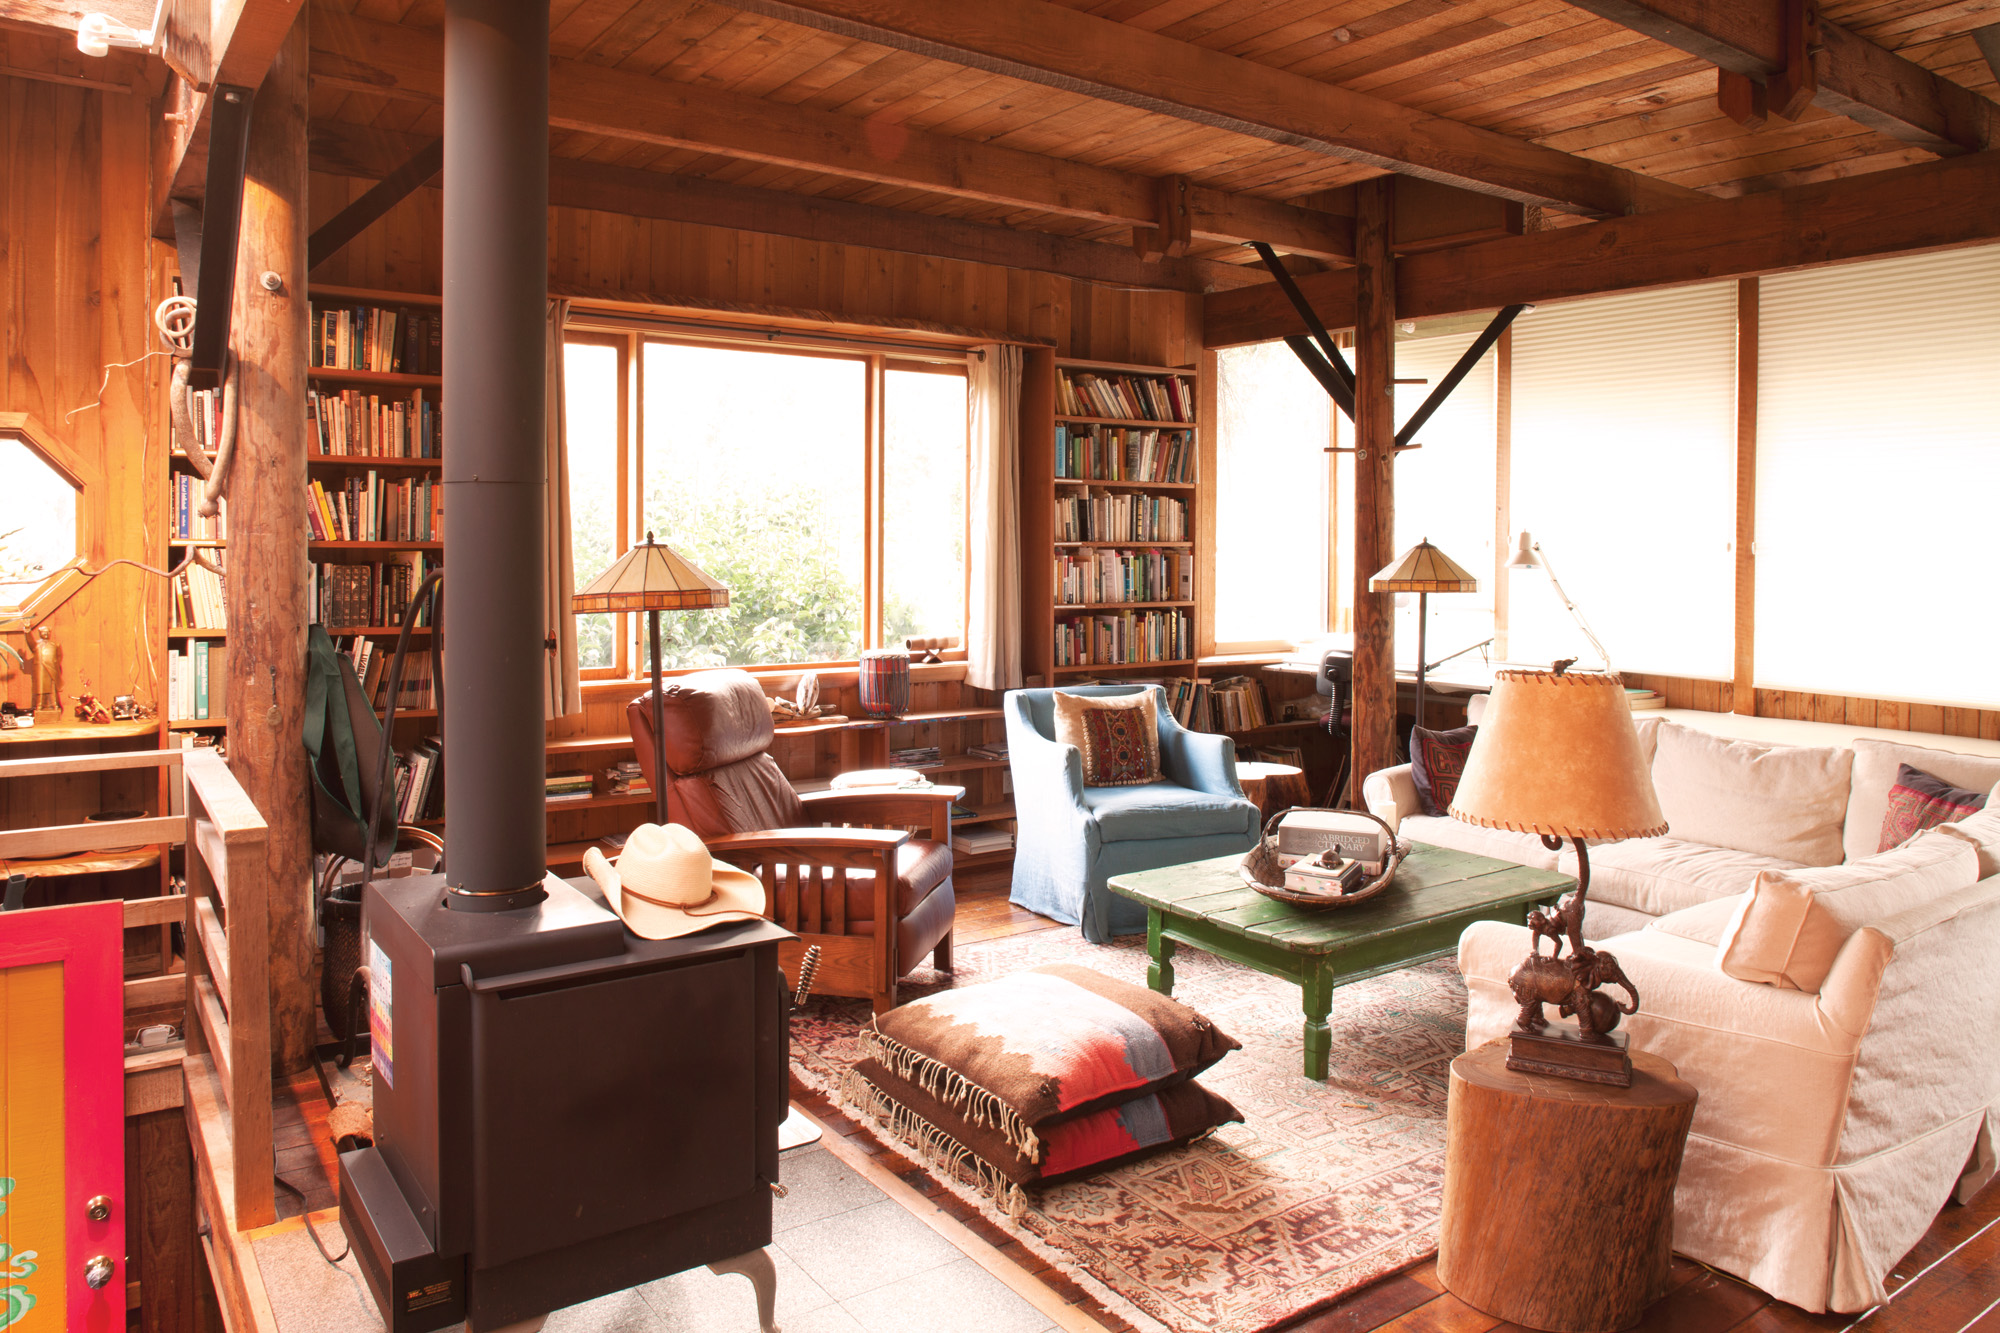 The second-floor living room has high ceilings, walls of windows overlooking the gardens, and a wood-burning stove.